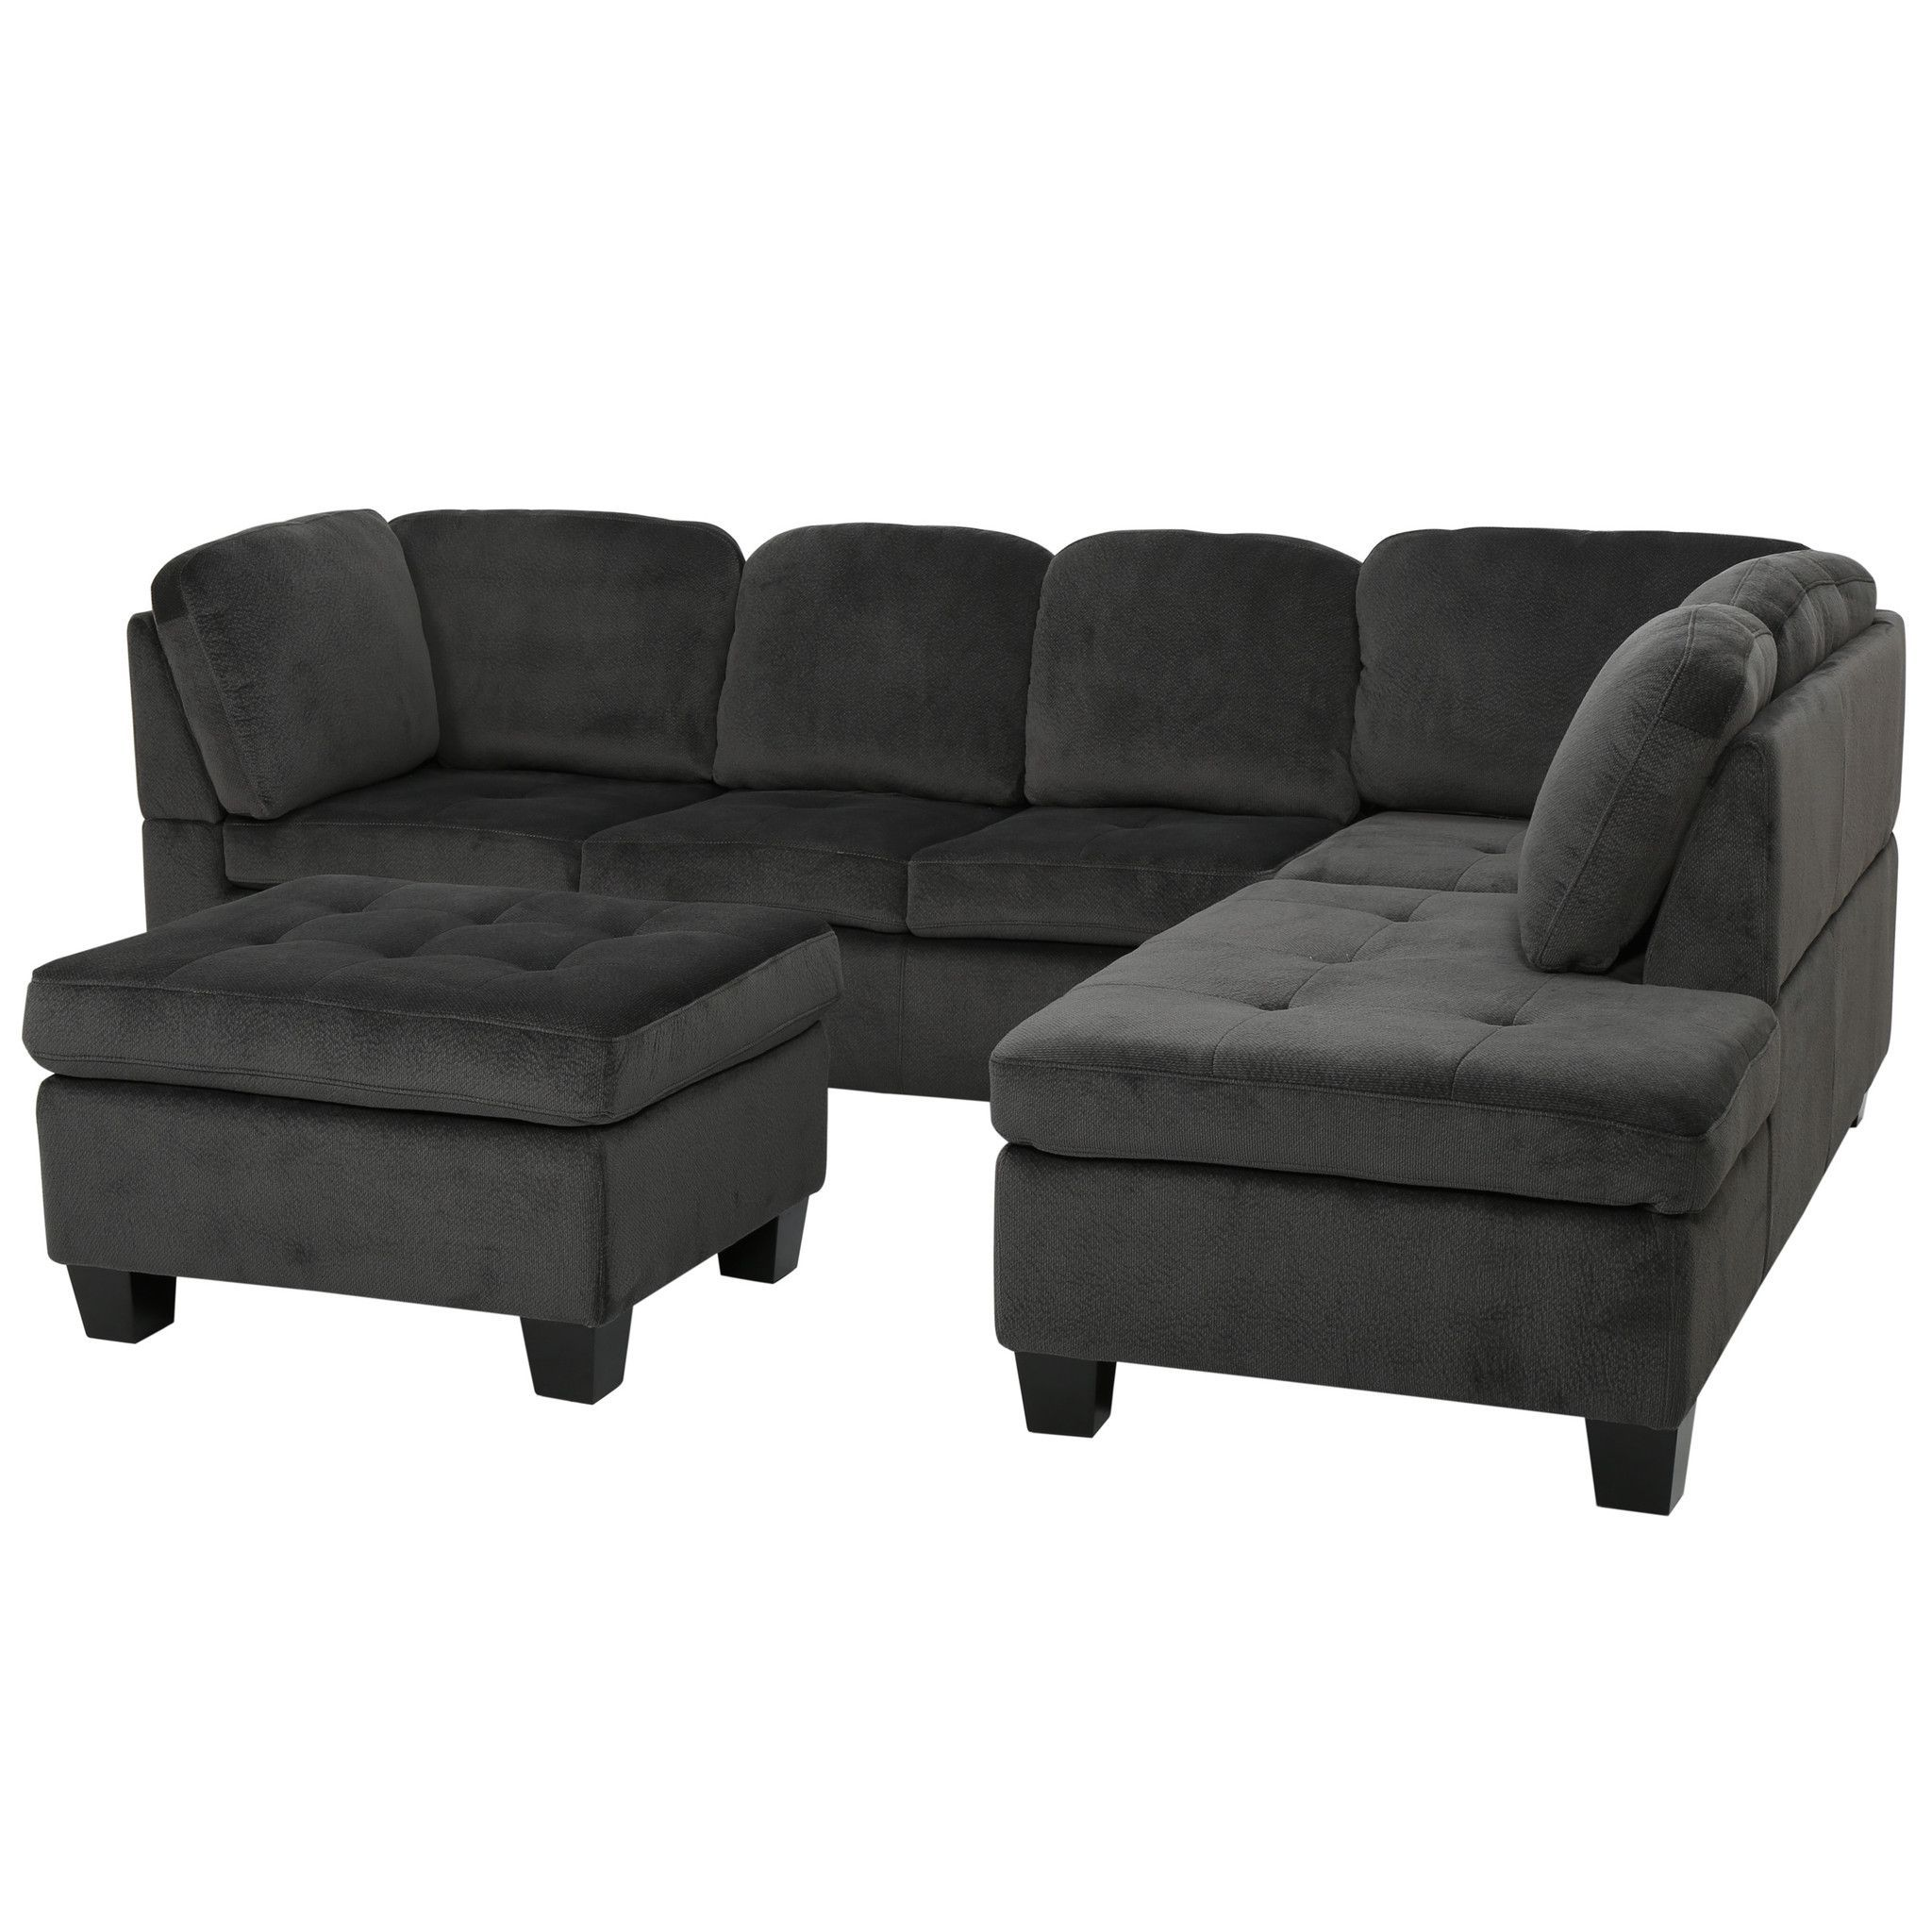 Best Gotham 3 Piece Charcoal Fabric Sectional Sofa Set 400 x 300